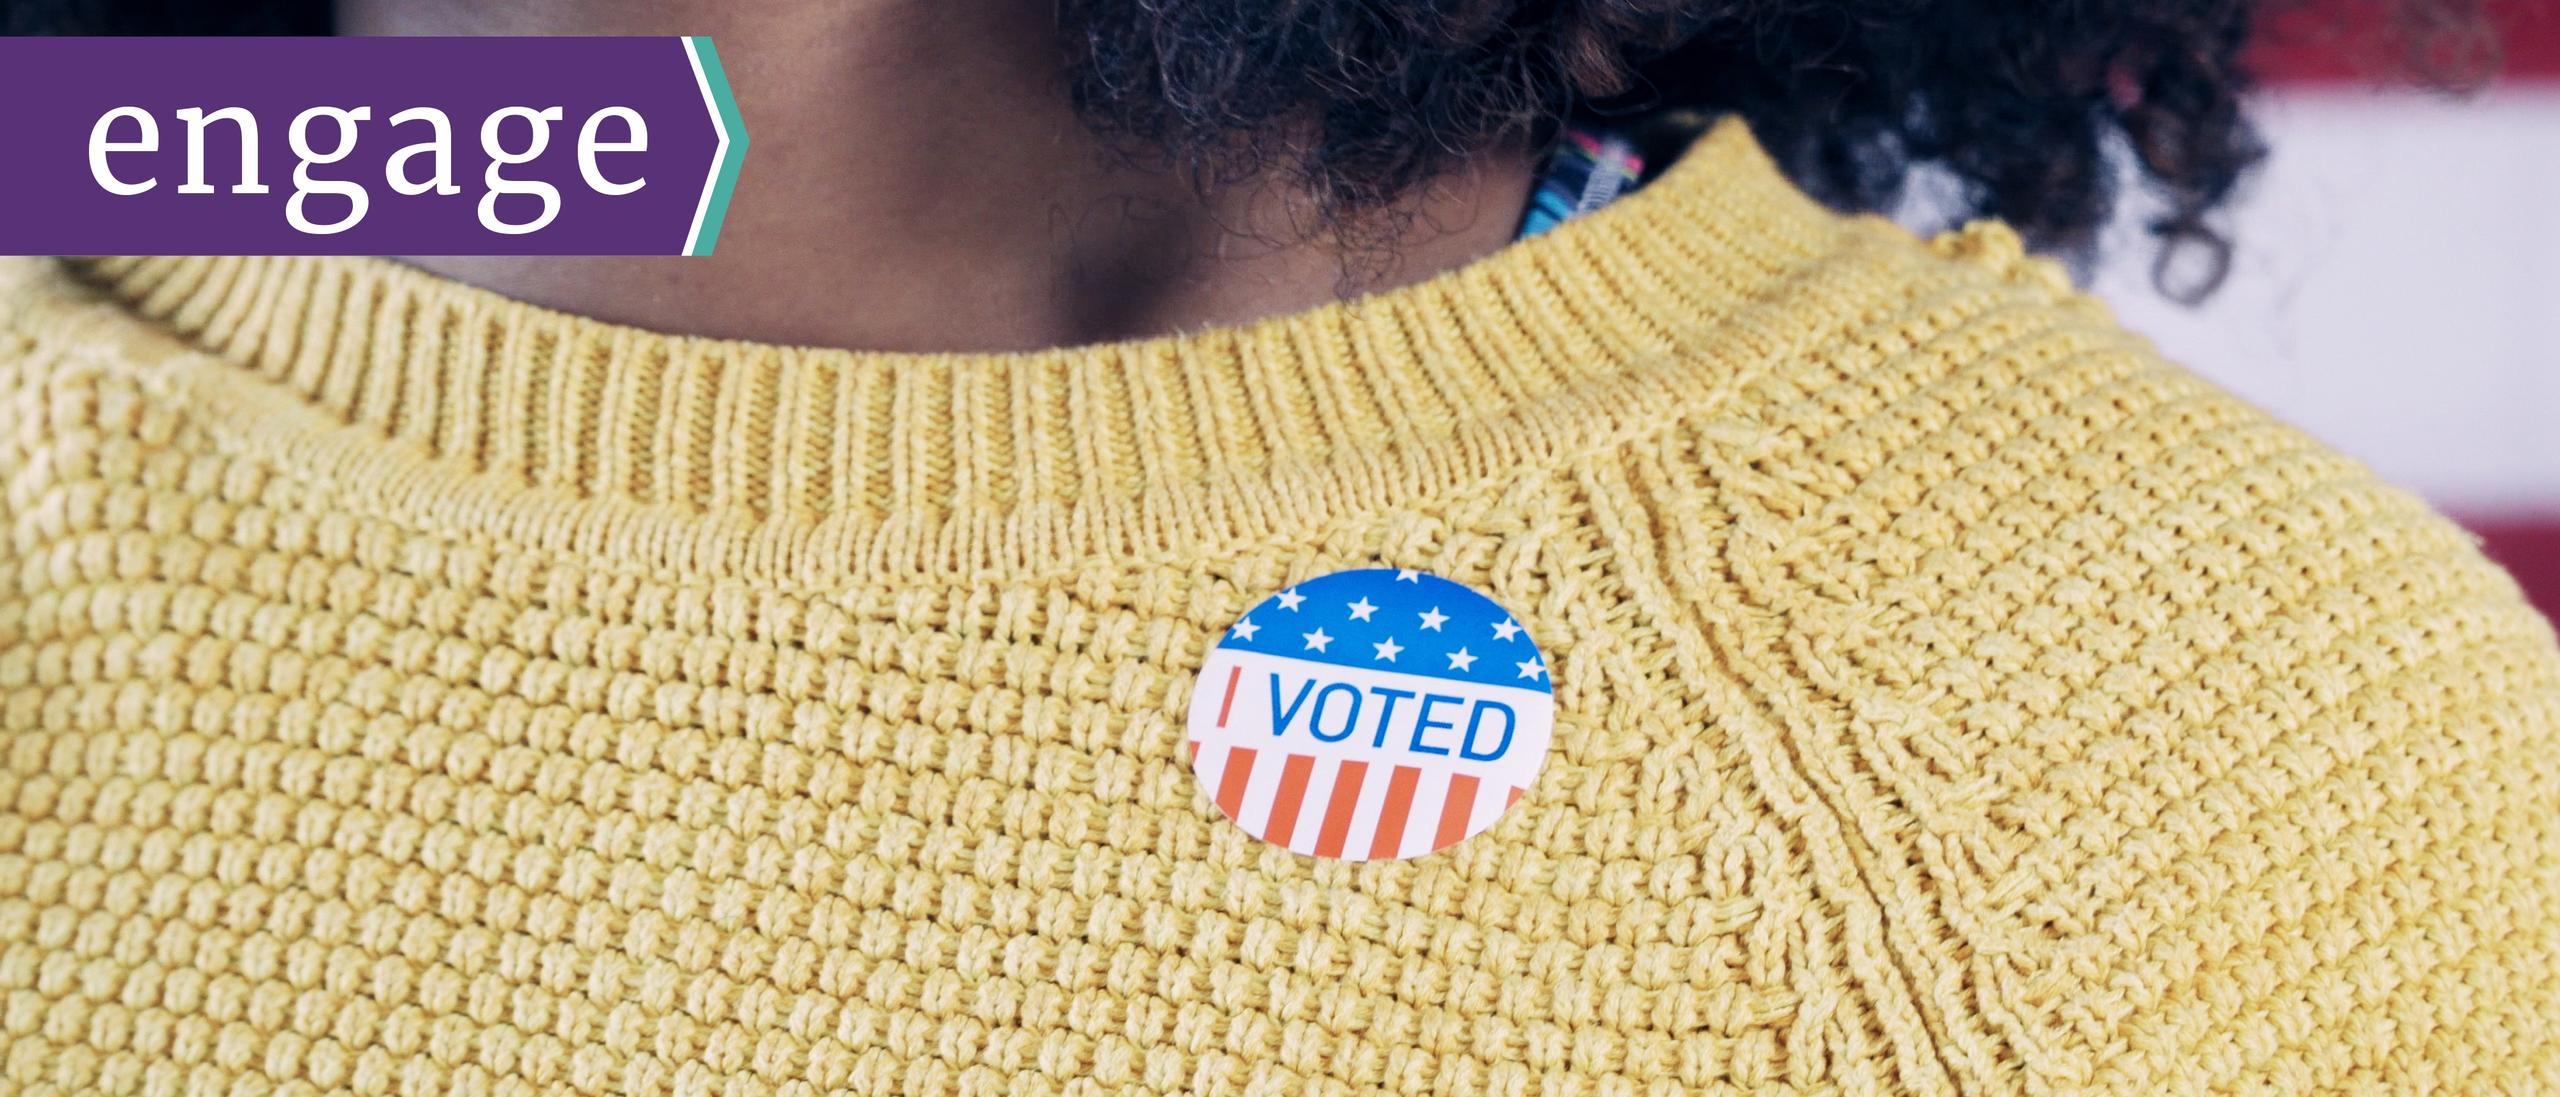 I voted sticker on a woman's sweater